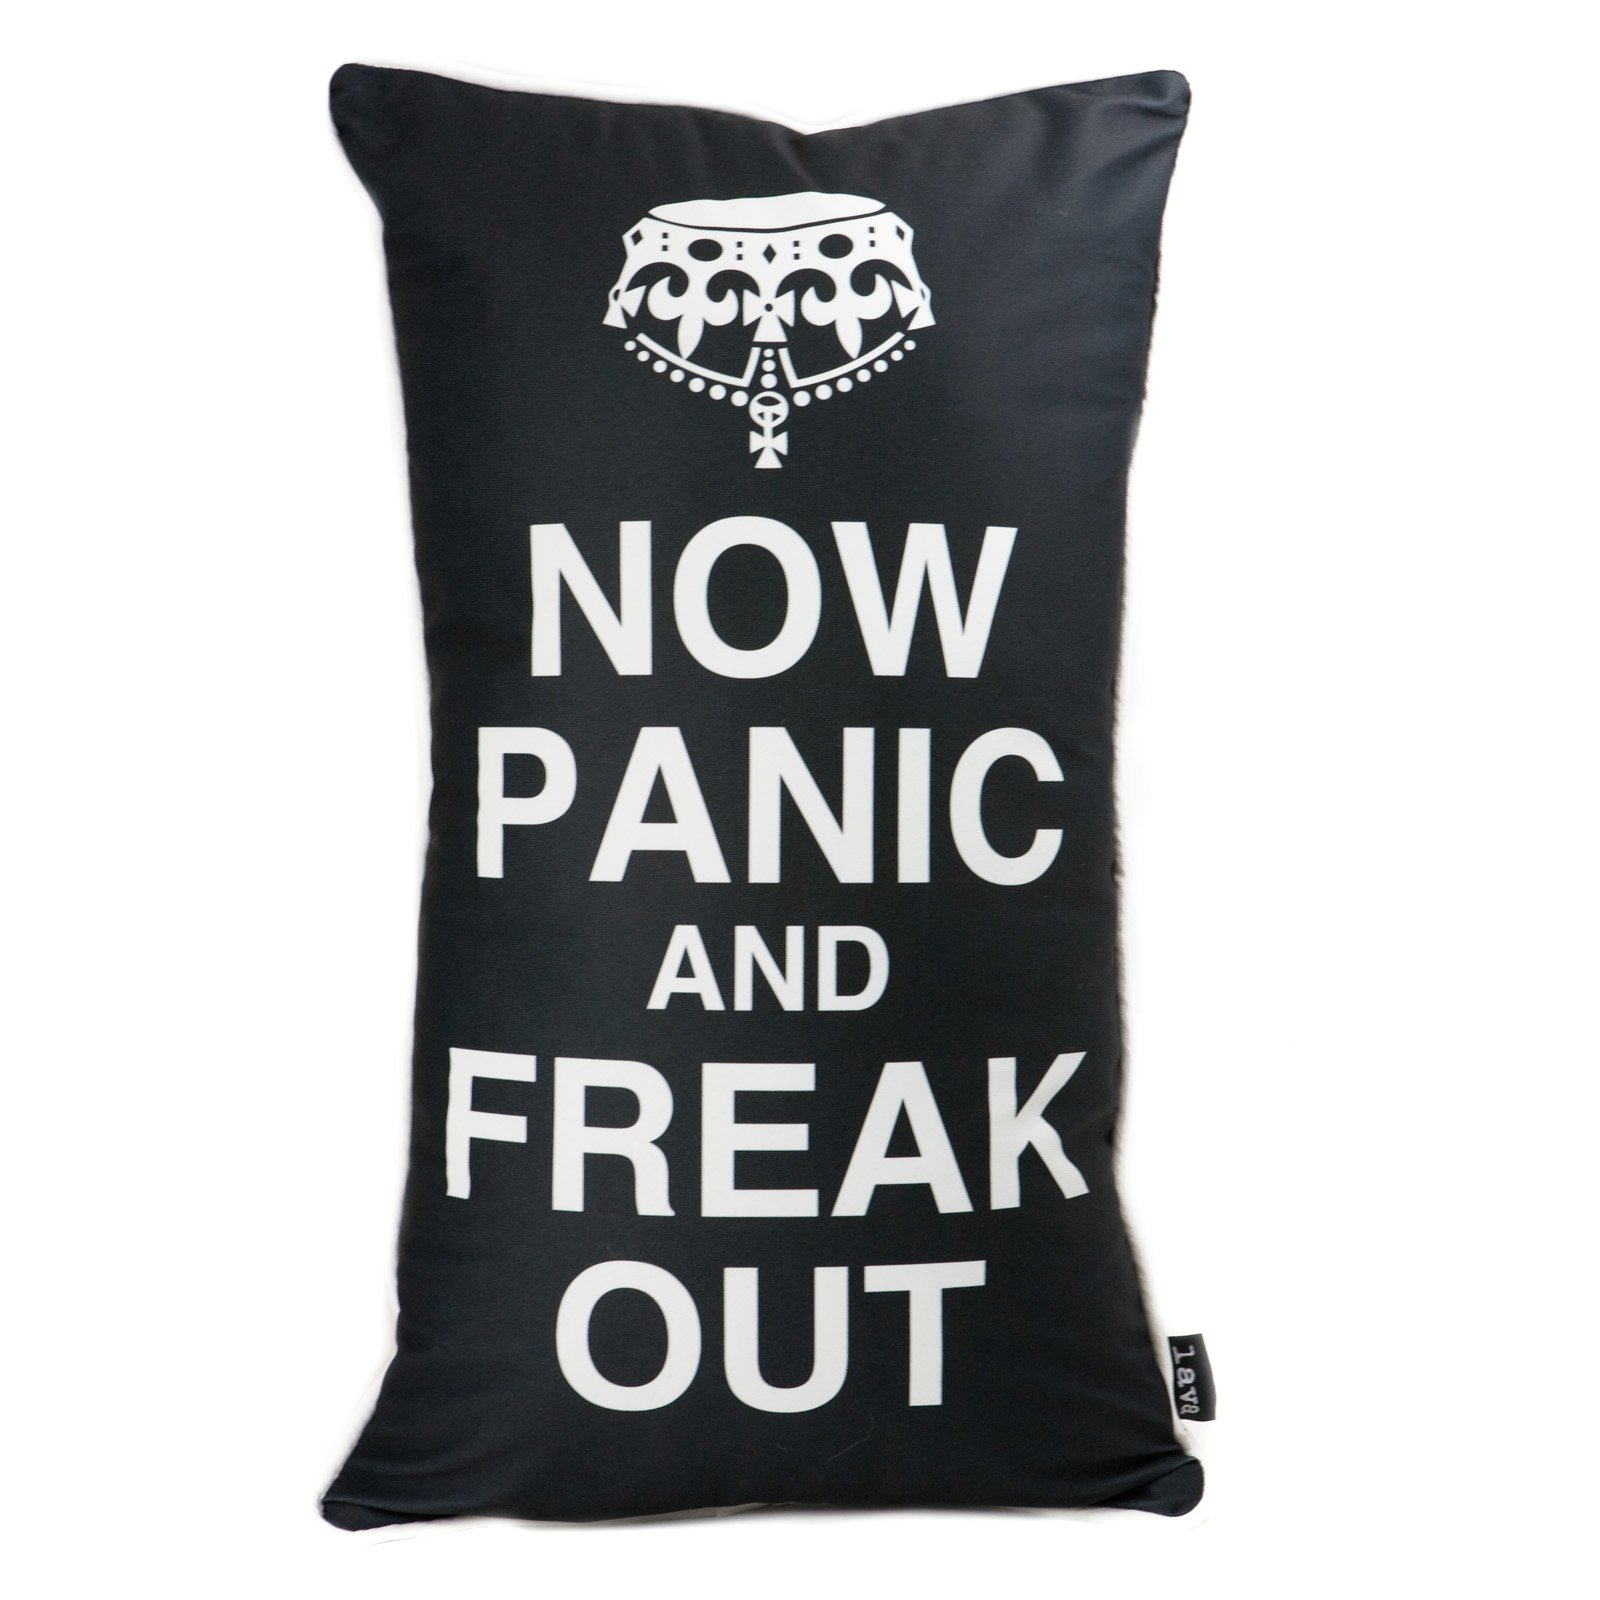 Freak Out Black 14 x 24 Pillow By Lava - Decorative Pillows at Hayneedle